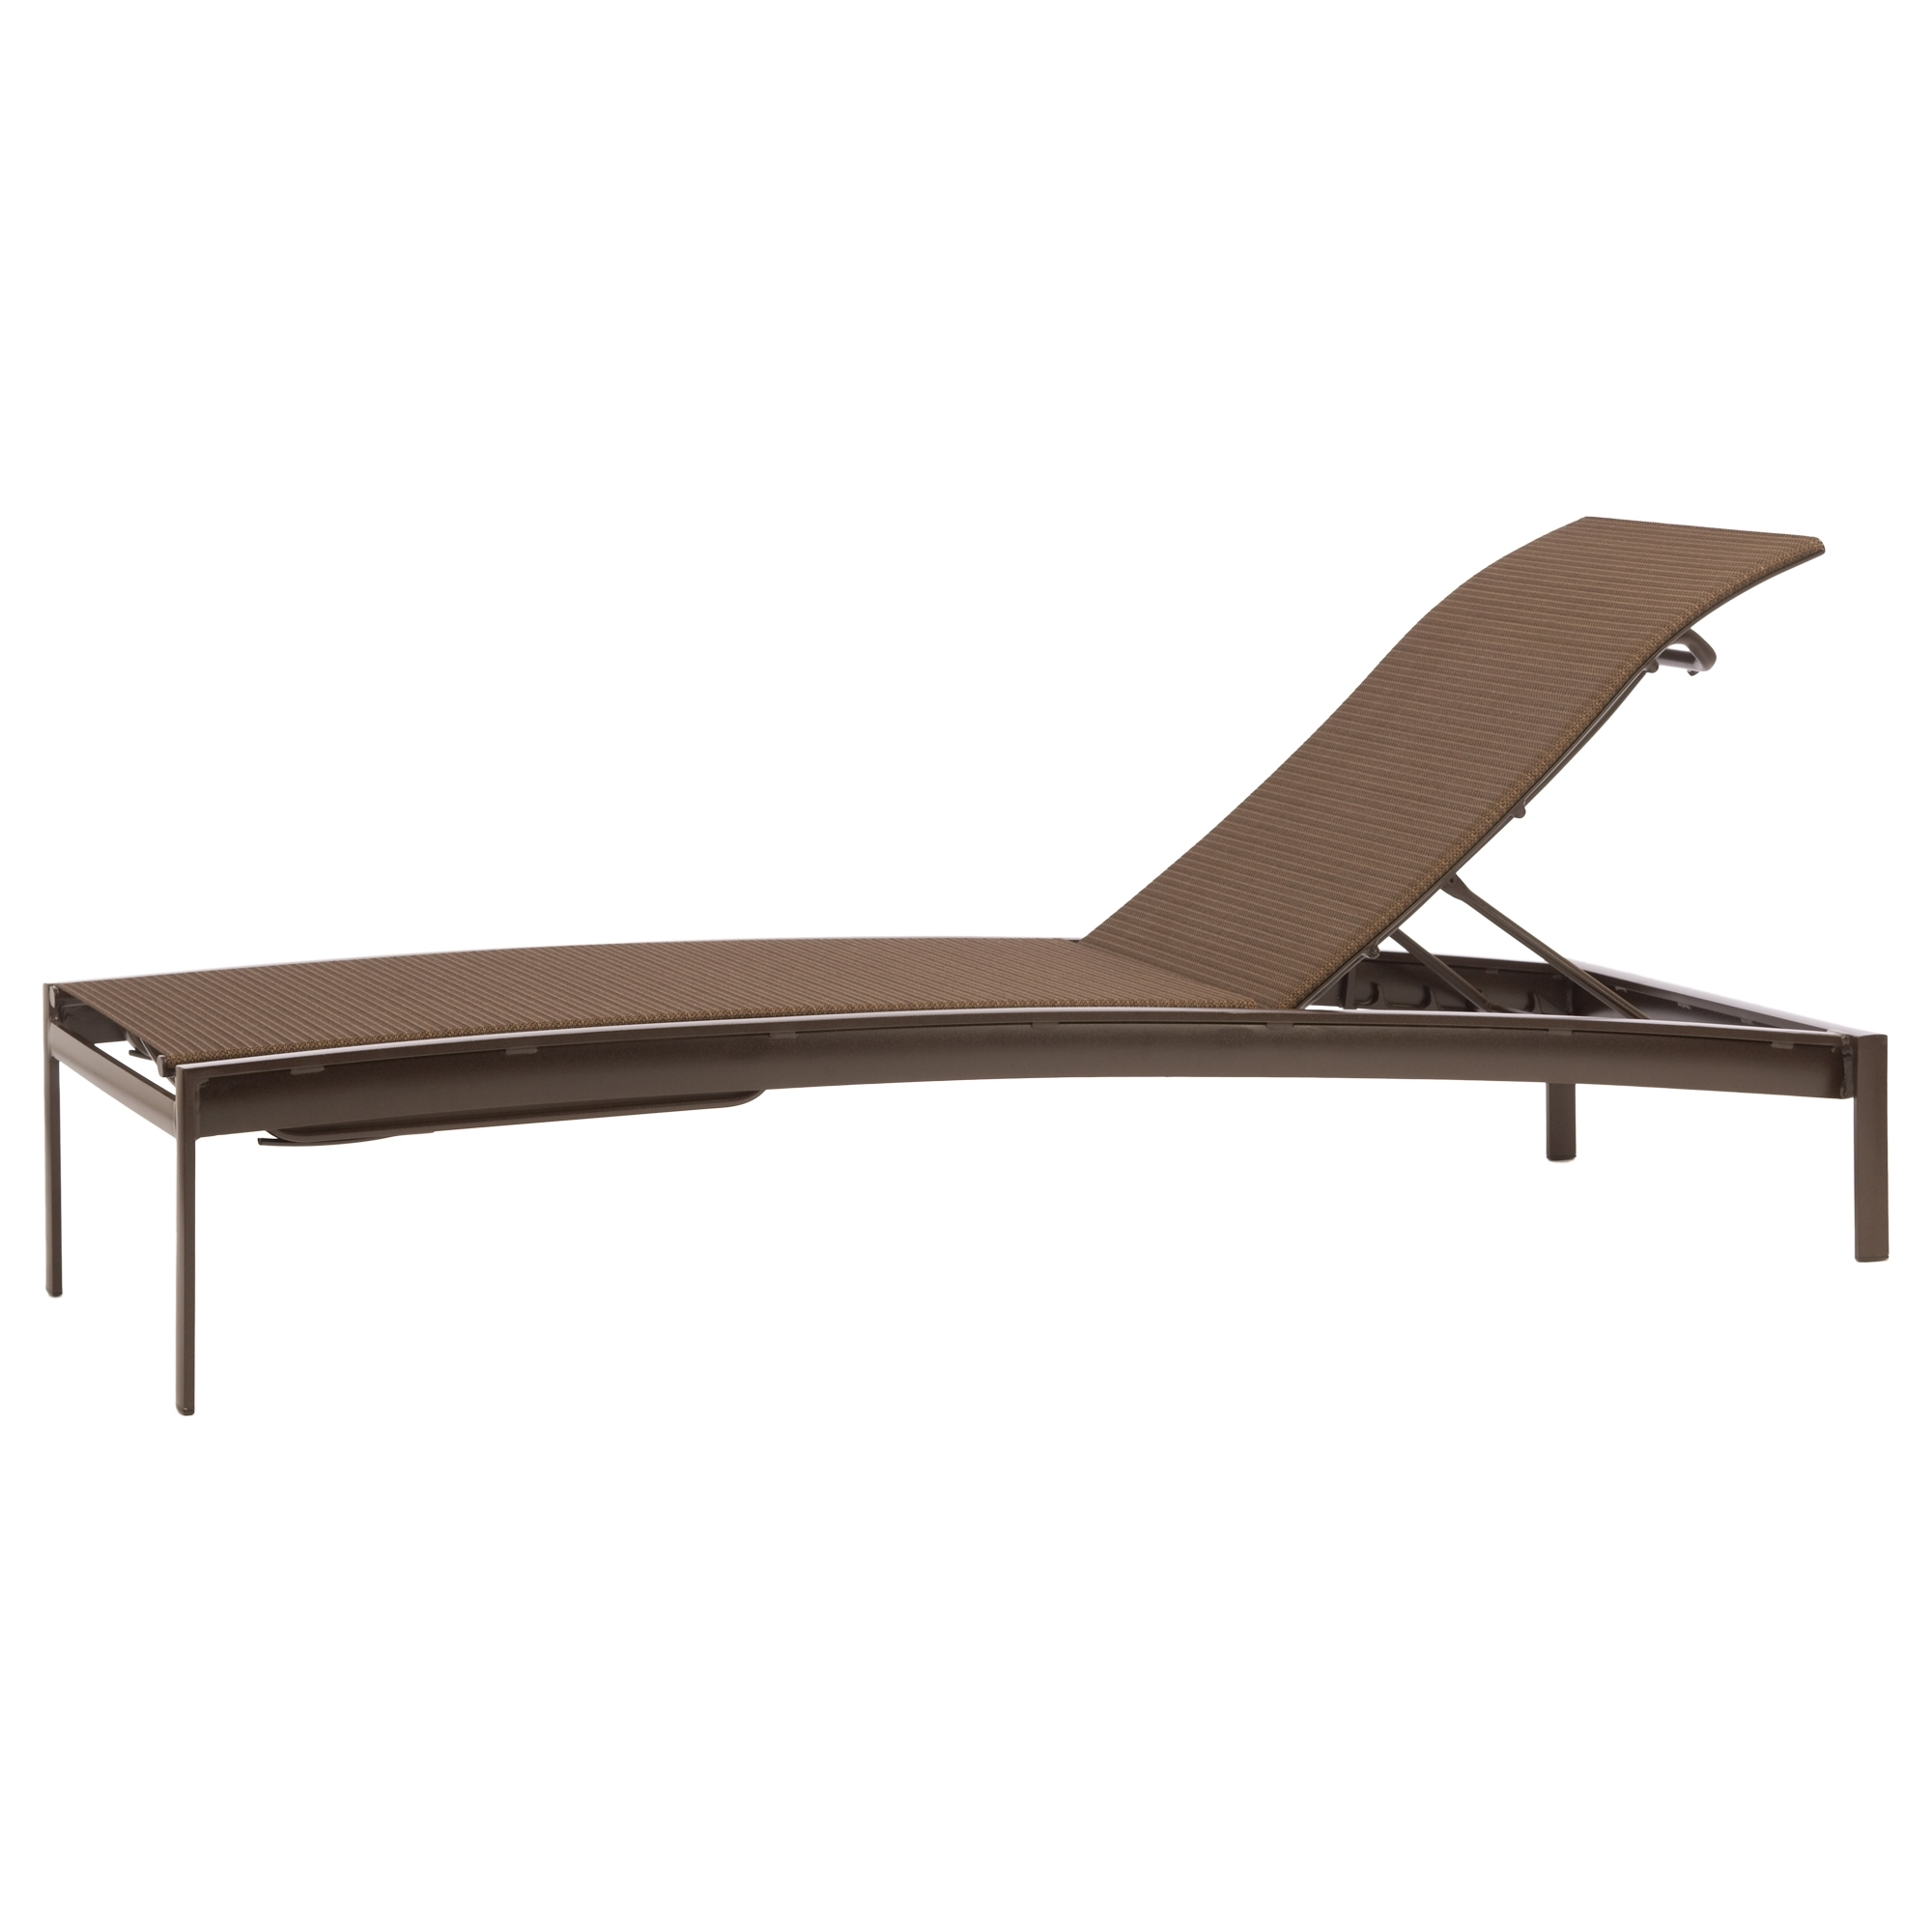 Best And Newest Brown Jordan Contract Pertaining To Brown Jordan Chaise Lounge Chairs (View 12 of 15)